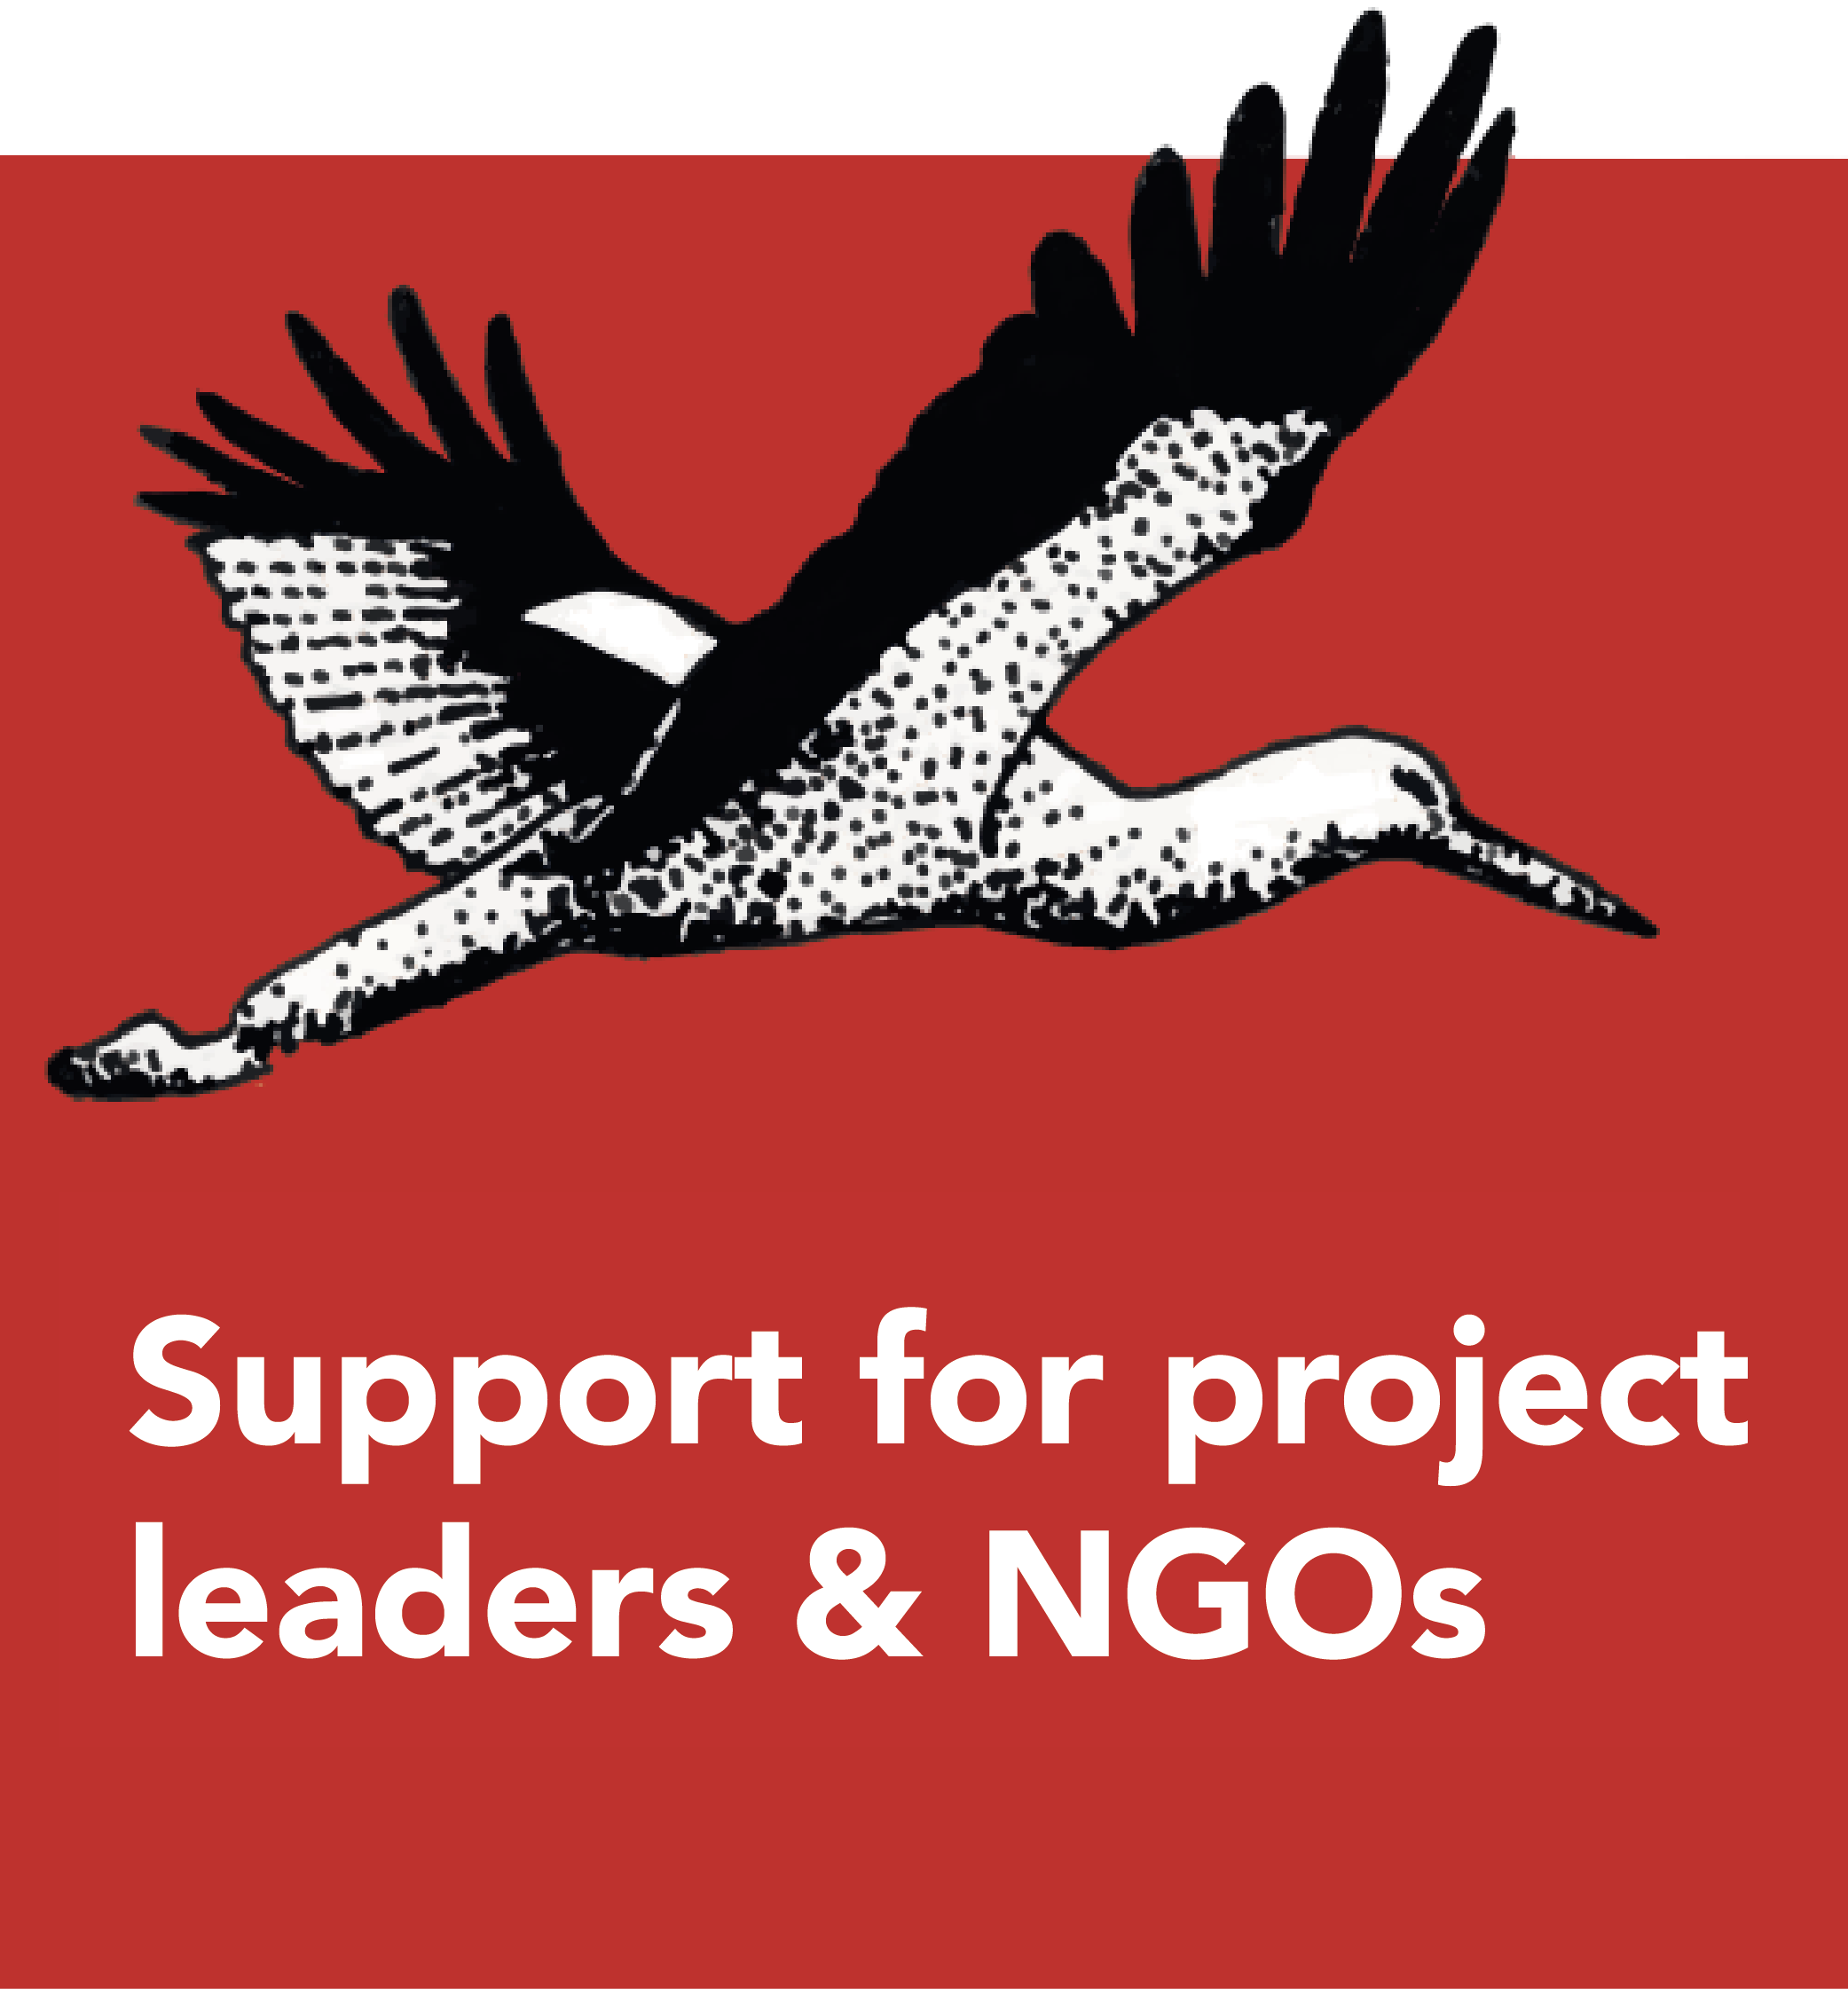 Support for project leaders and NGOs